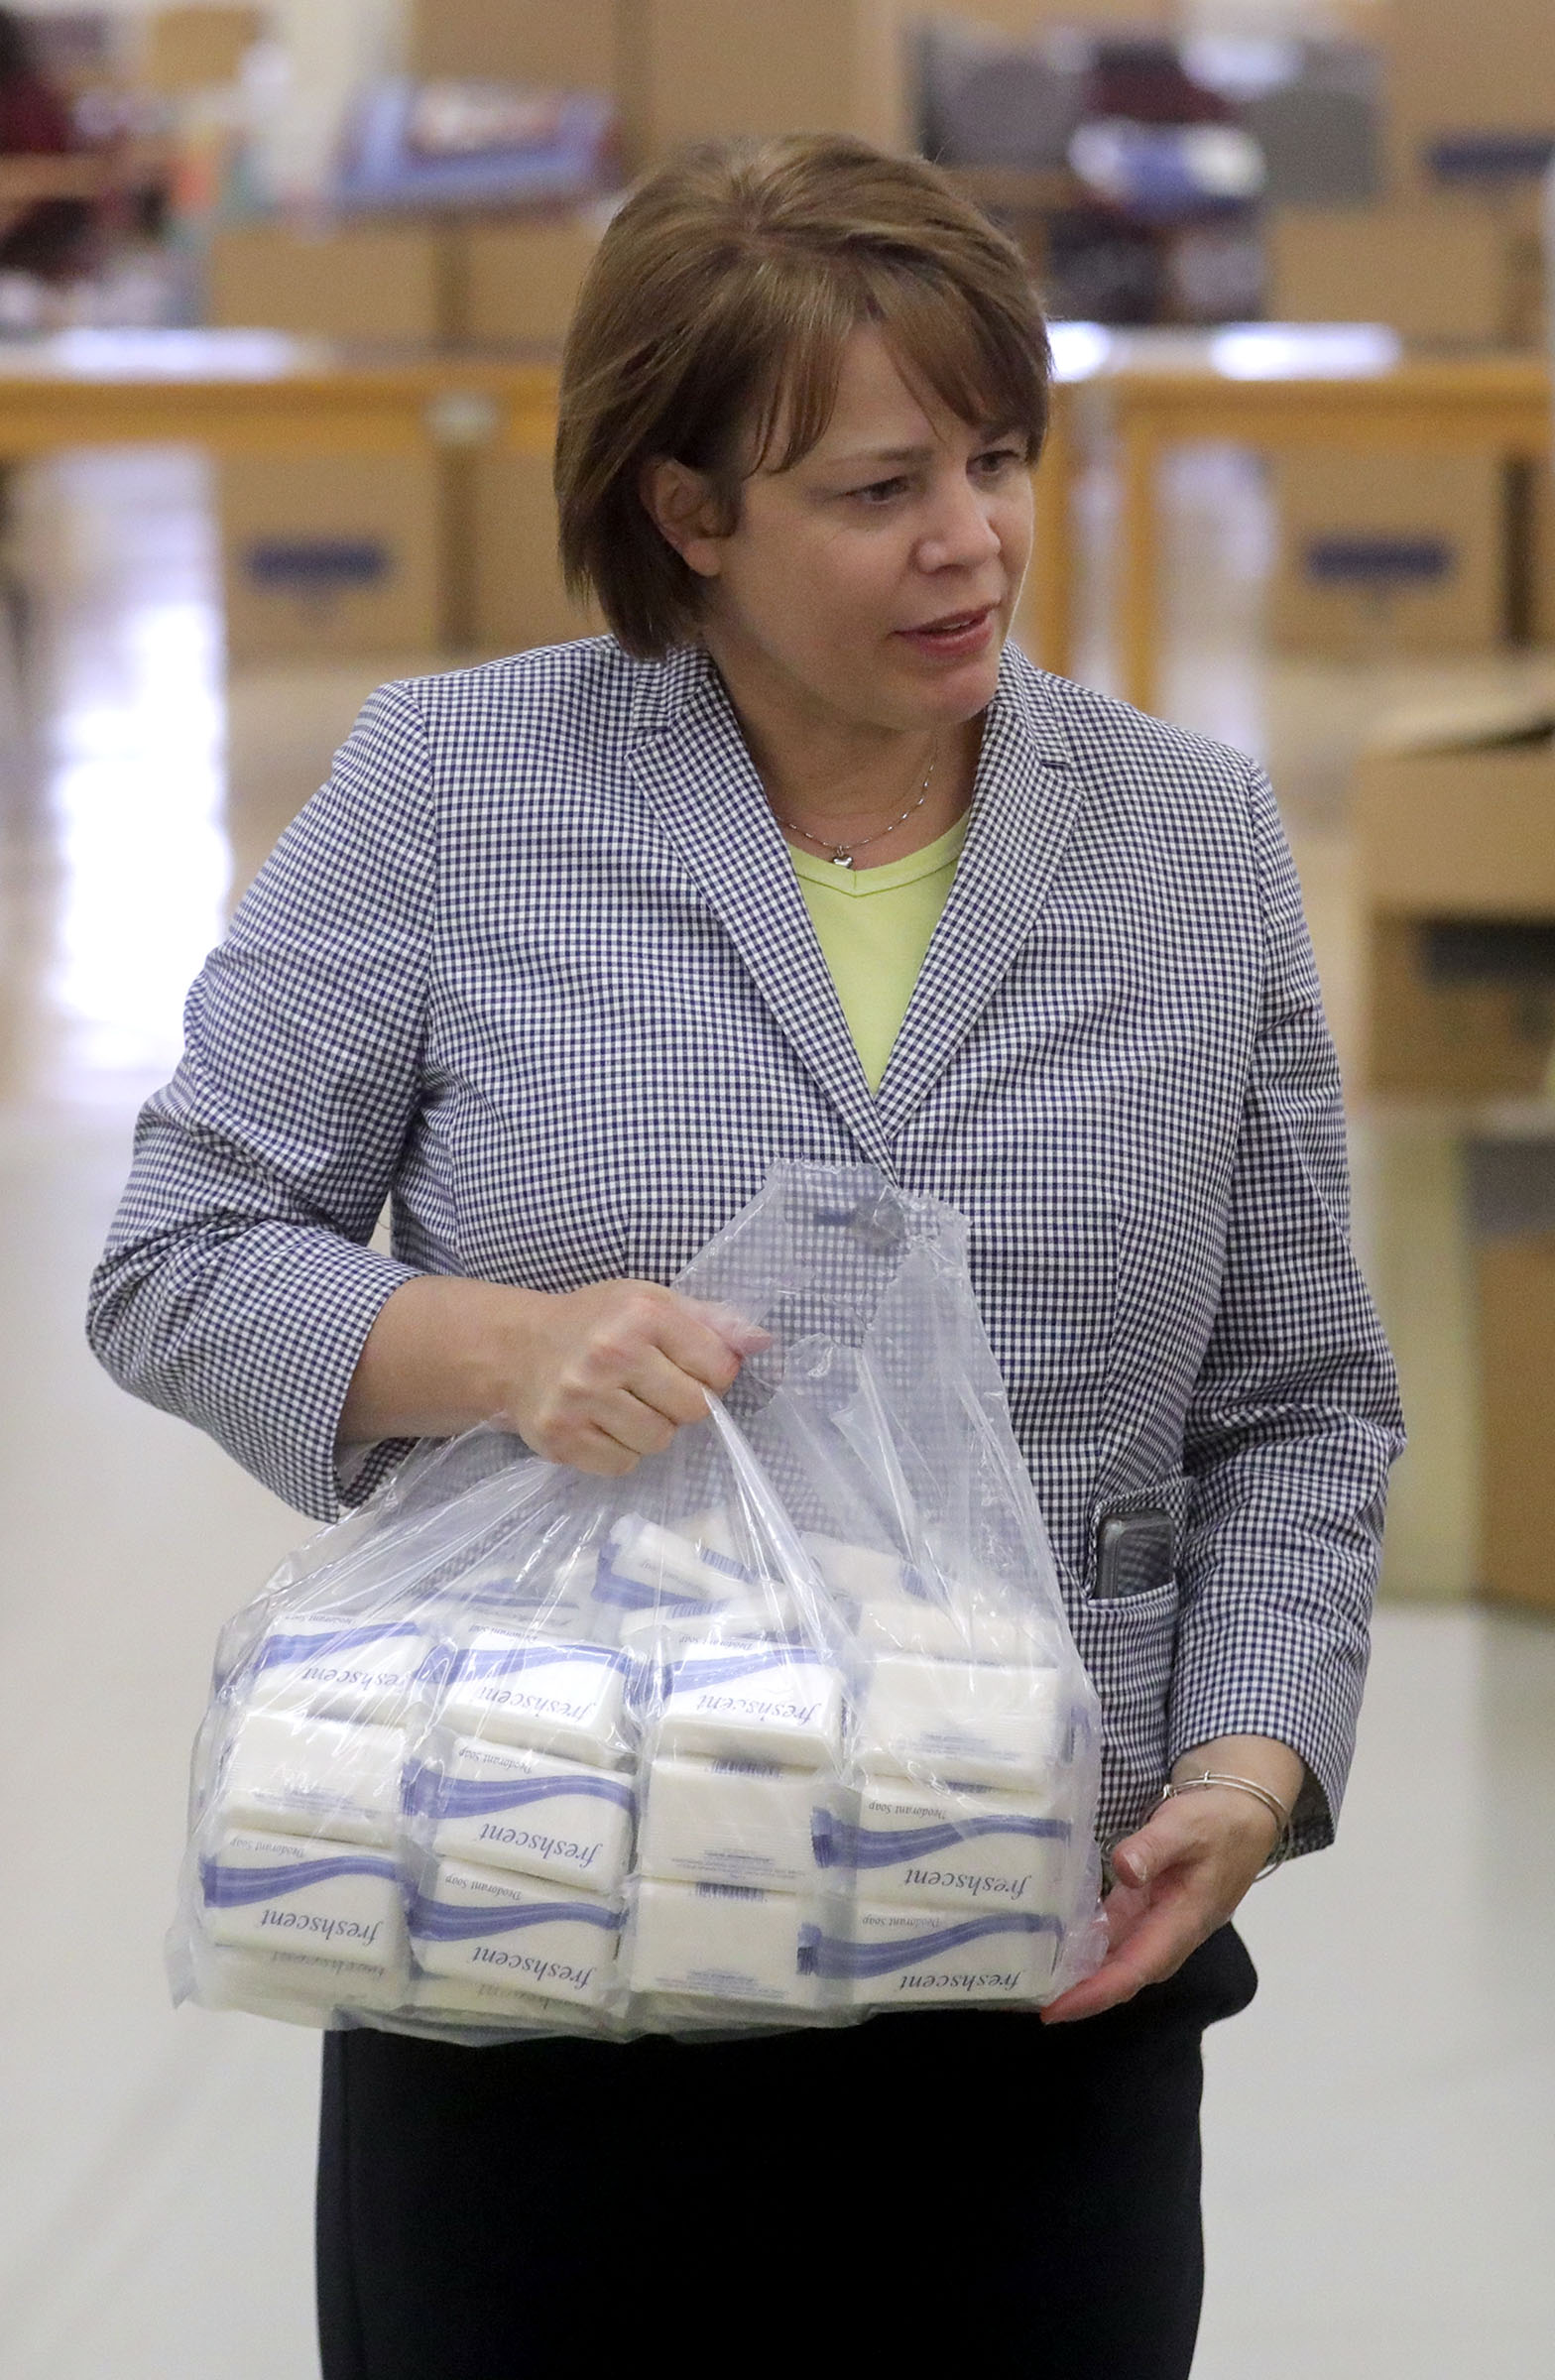 Sister Sharon Eubank, first counselor in the Relief Society general presidency, carries a bag of soap as spouses of U.S. governors take part in a service project at the Latter-day Saint Humanitarian Center in Salt Lake City on Thursday, July 25, 2019.